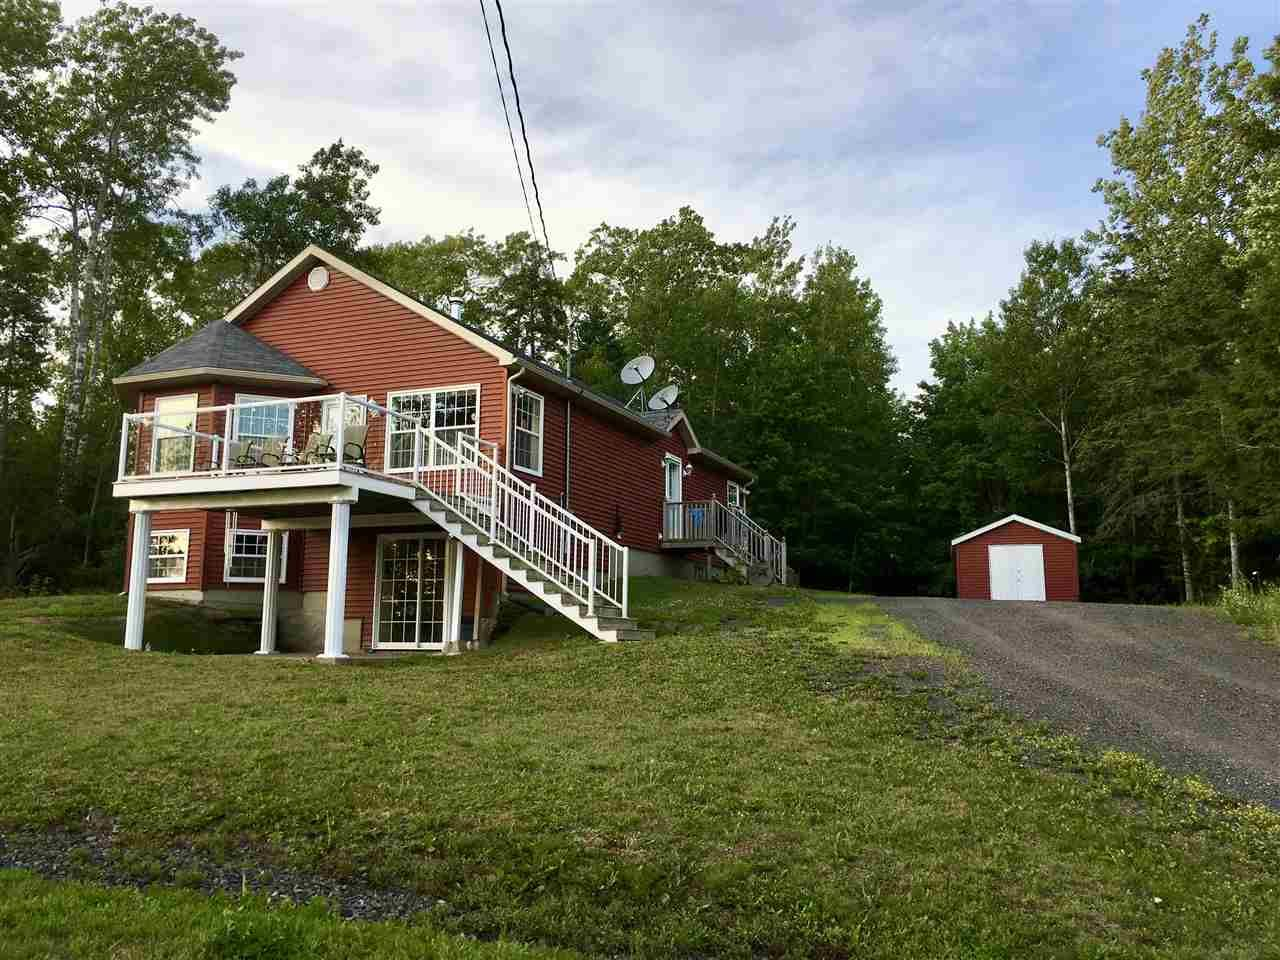 Main Photo: 868 Centredale Road in Millstream: 108-Rural Pictou County Residential for sale (Northern Region)  : MLS®# 202008976